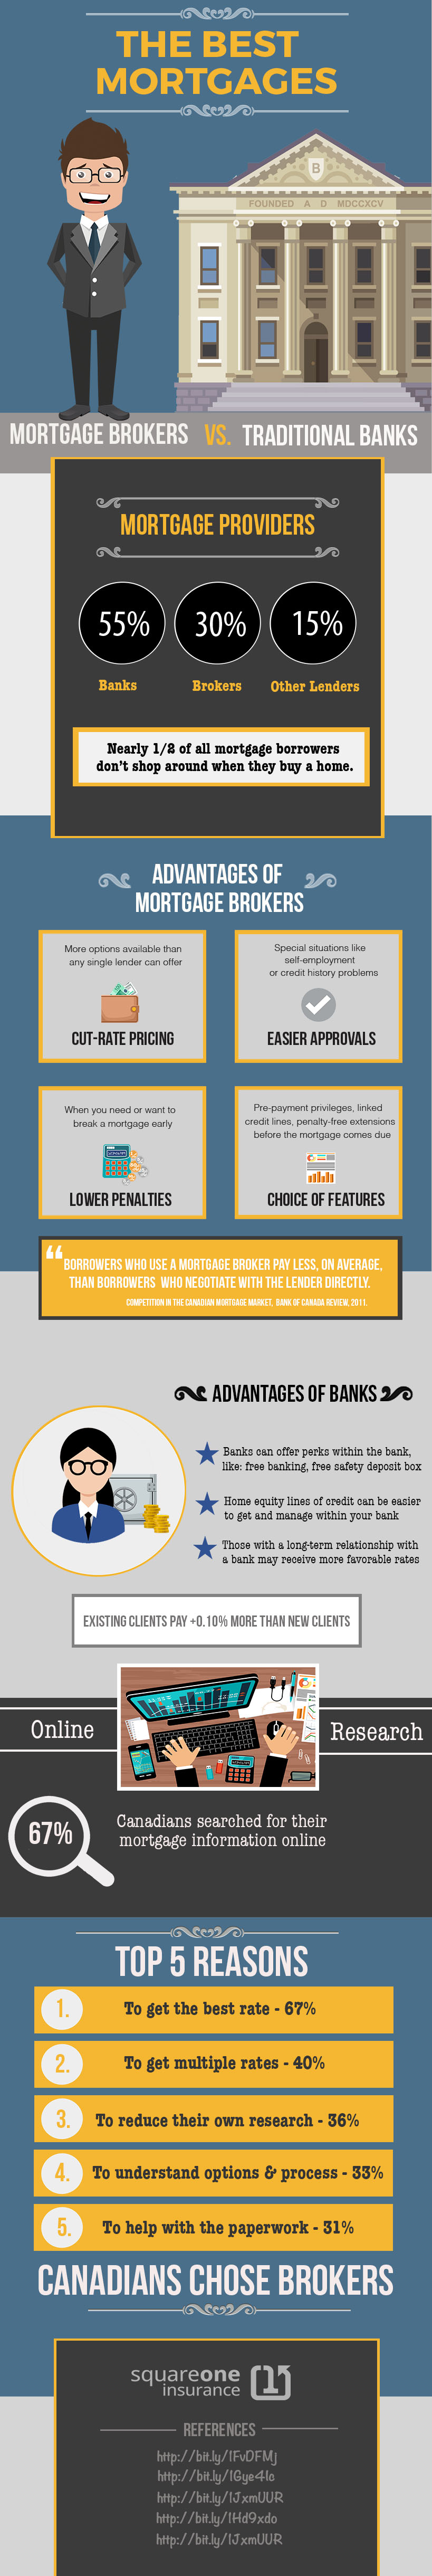 Infographic about mortgage brokers versus traditional banks